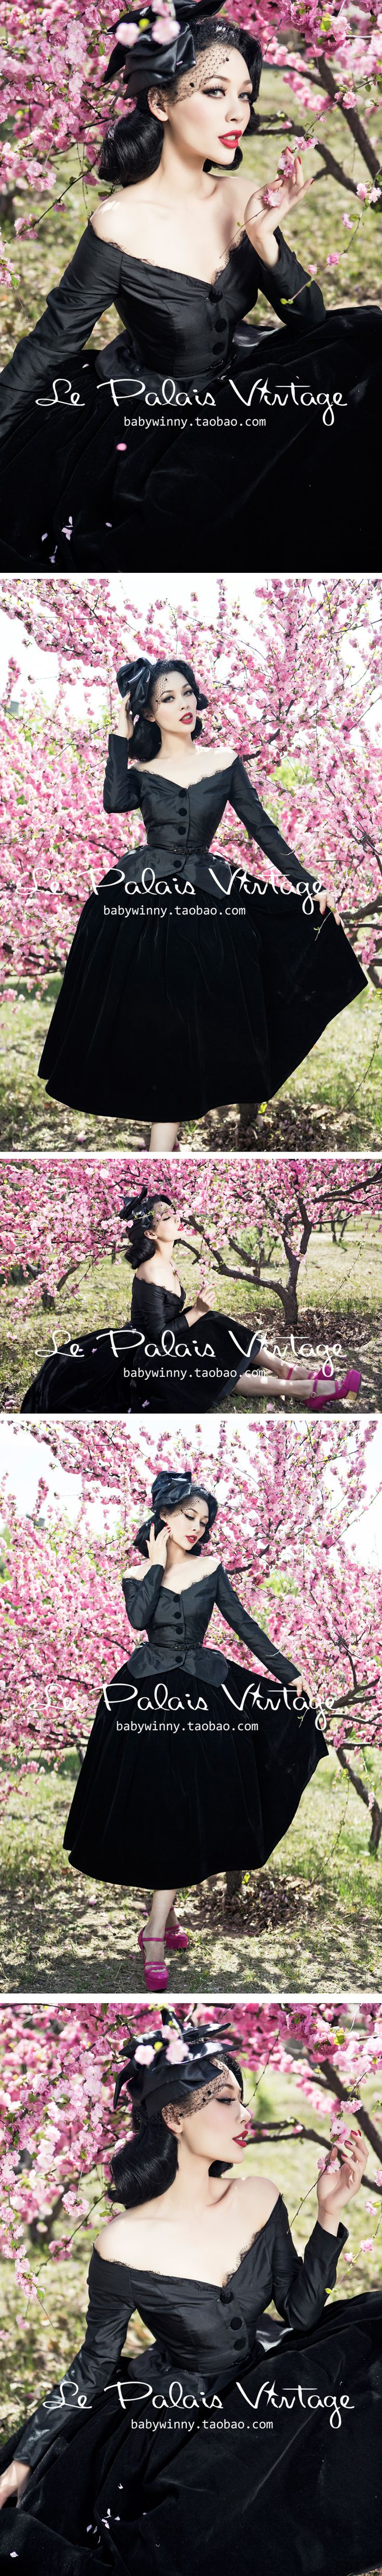 Aliexpress.com : Buy FREE SHIPPINF Le palais vintage elegant all match classic black flat flannelette high waist puff skirt from Reliable high waist puff skirt suppliers on Vintage Palace.